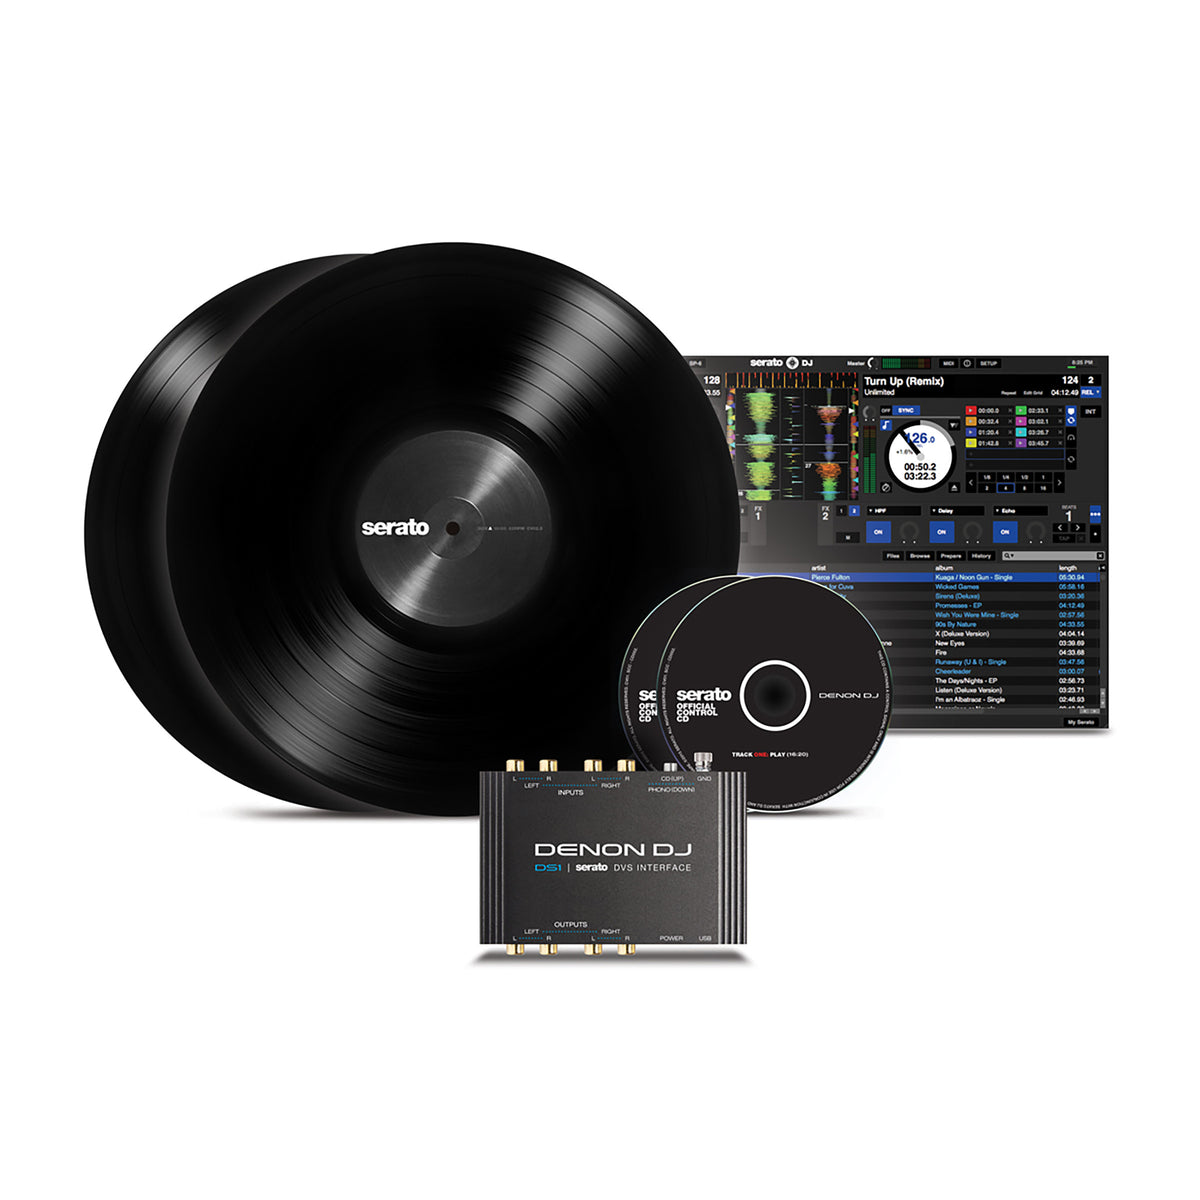 Denon DJ: DS1 Serato Digital Vinyl Audio Interface